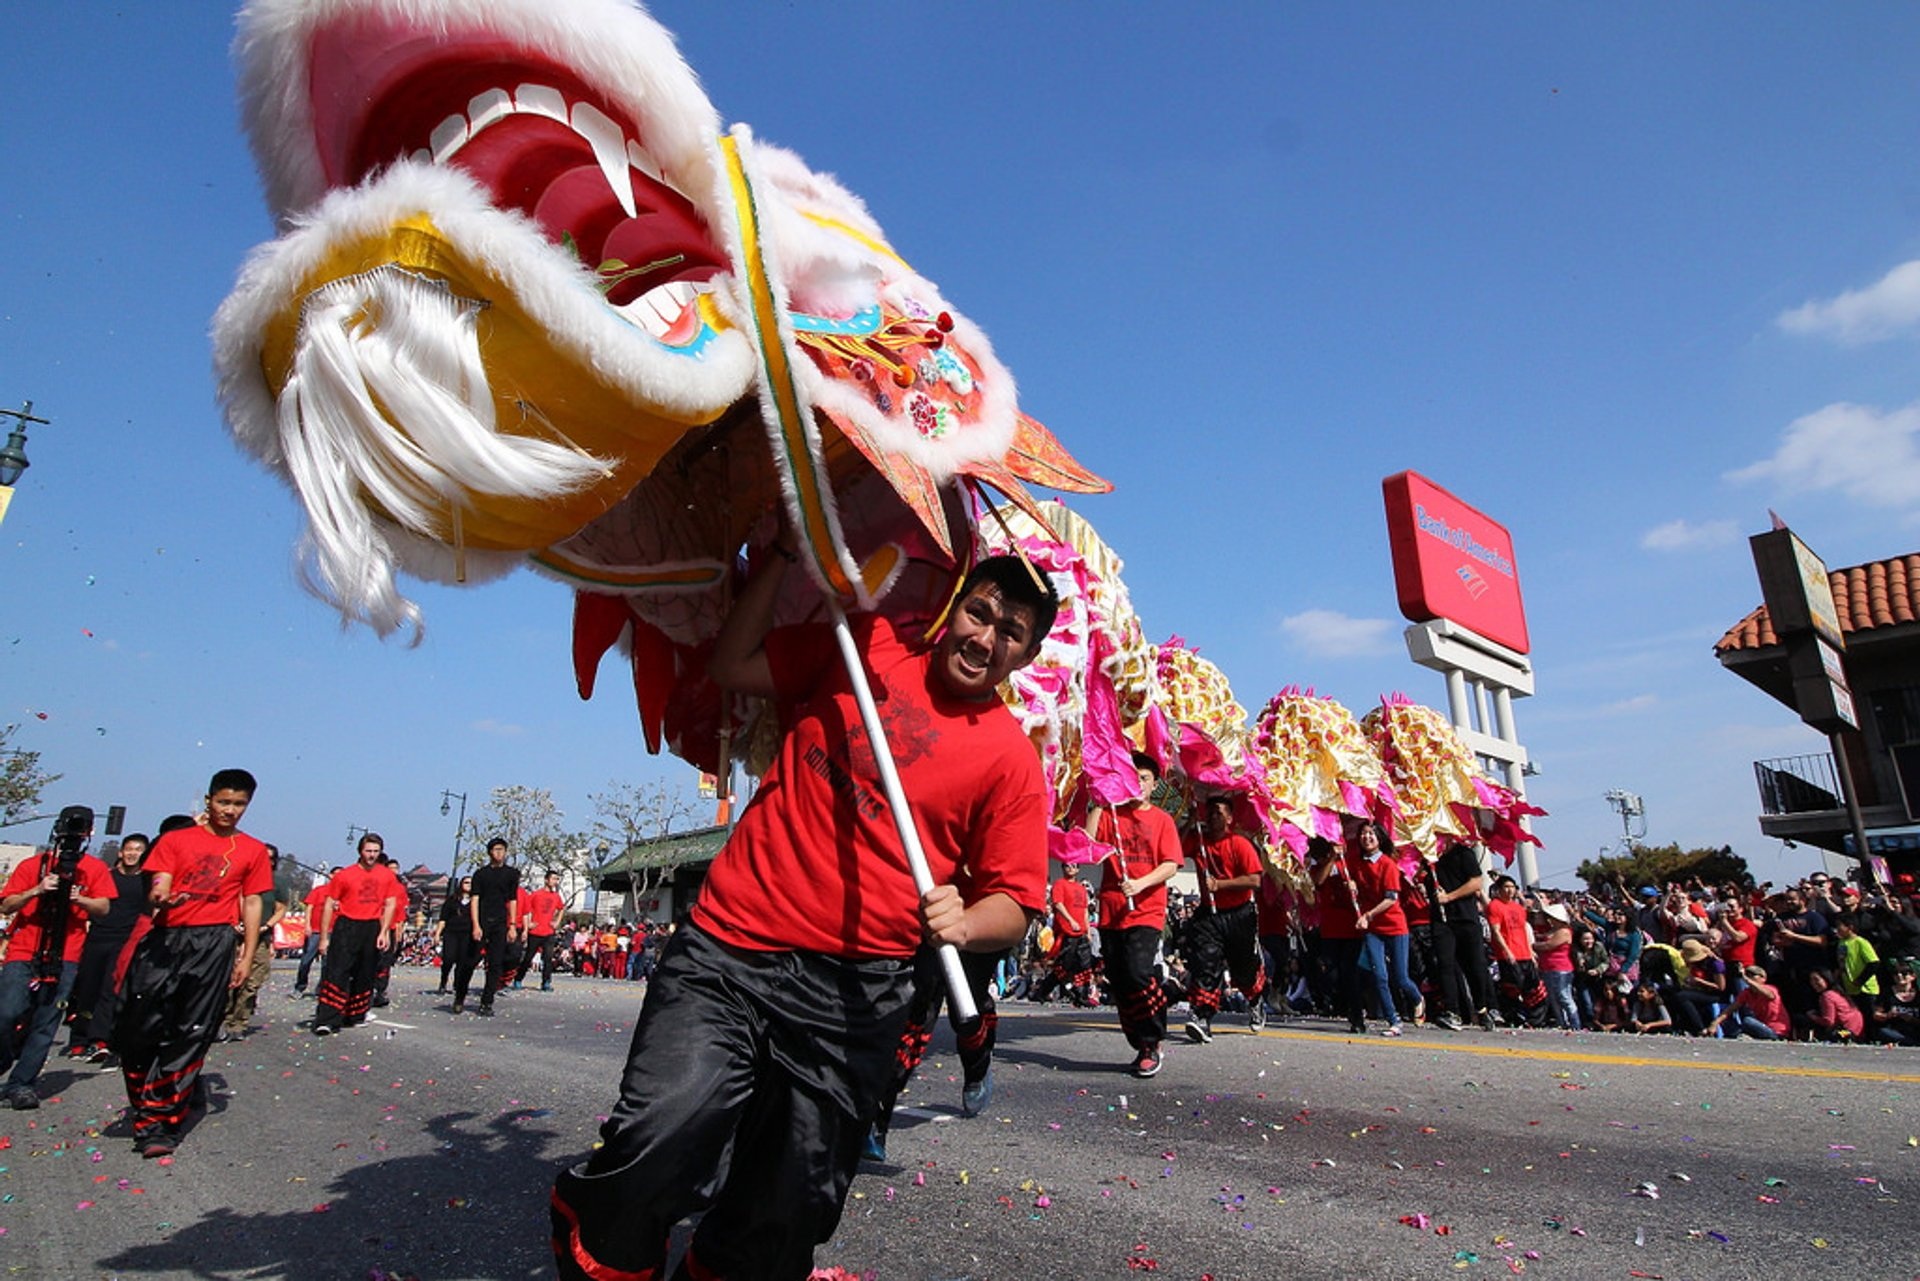 Golden Dragon Parade in Chinatown Los Angeles 2019